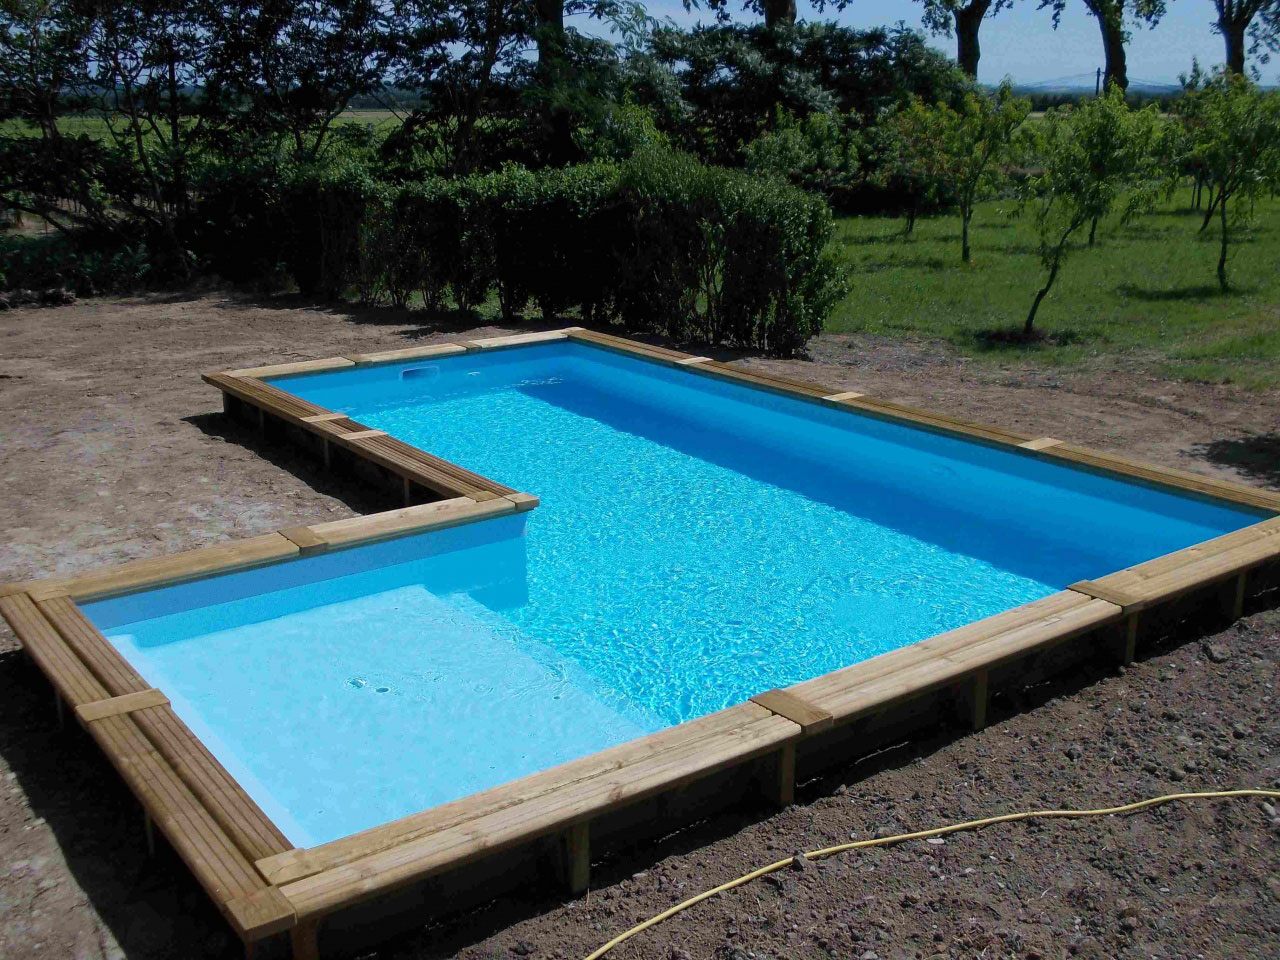 Piscine en bois promo finest piscine bois with piscine en for Monter une piscine en bois